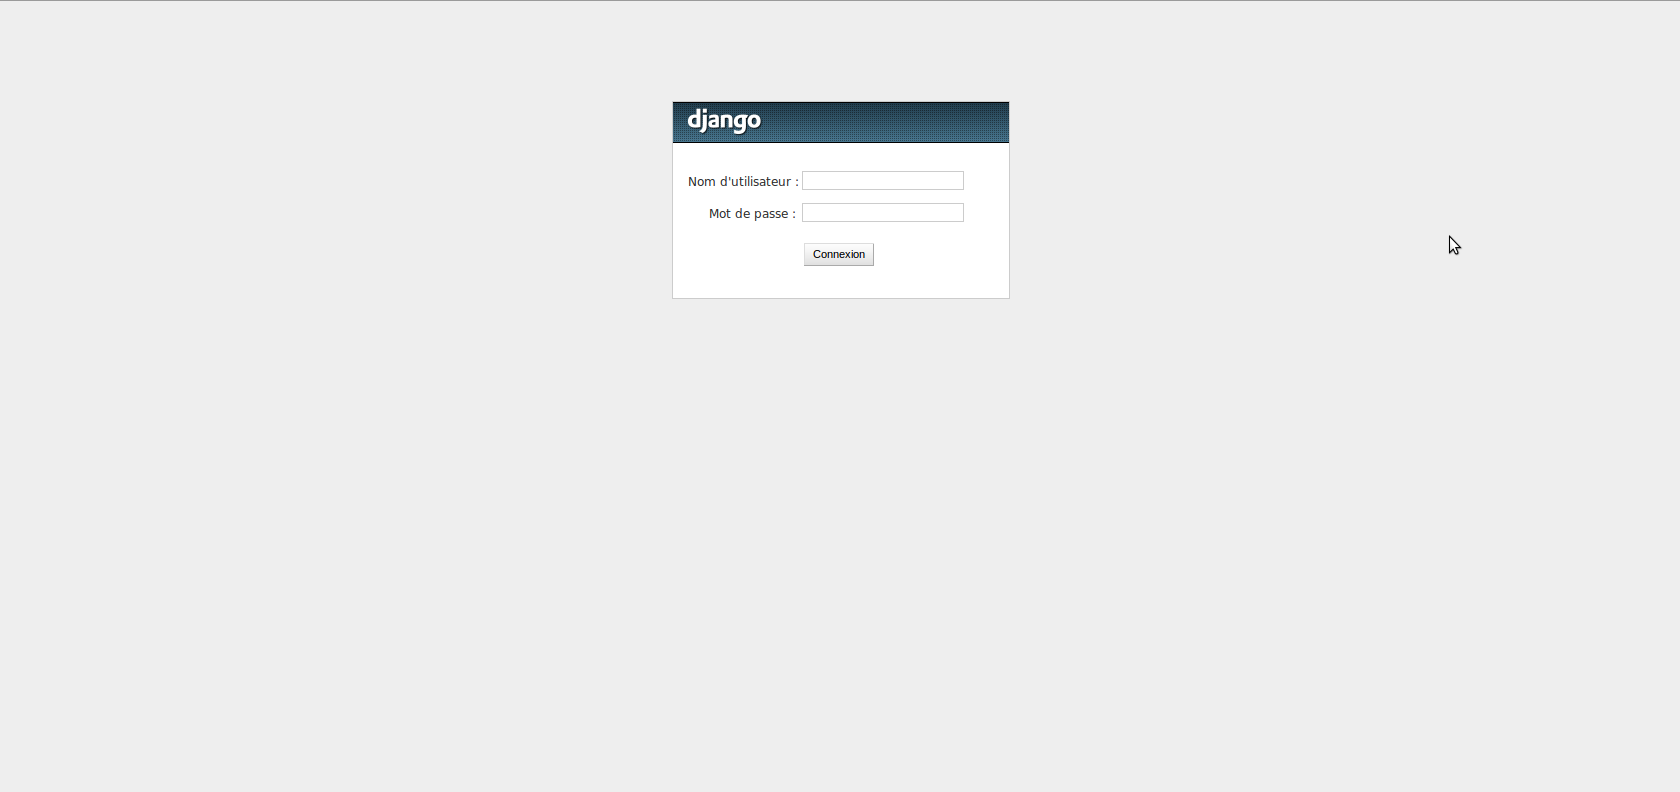 The django admin login screen